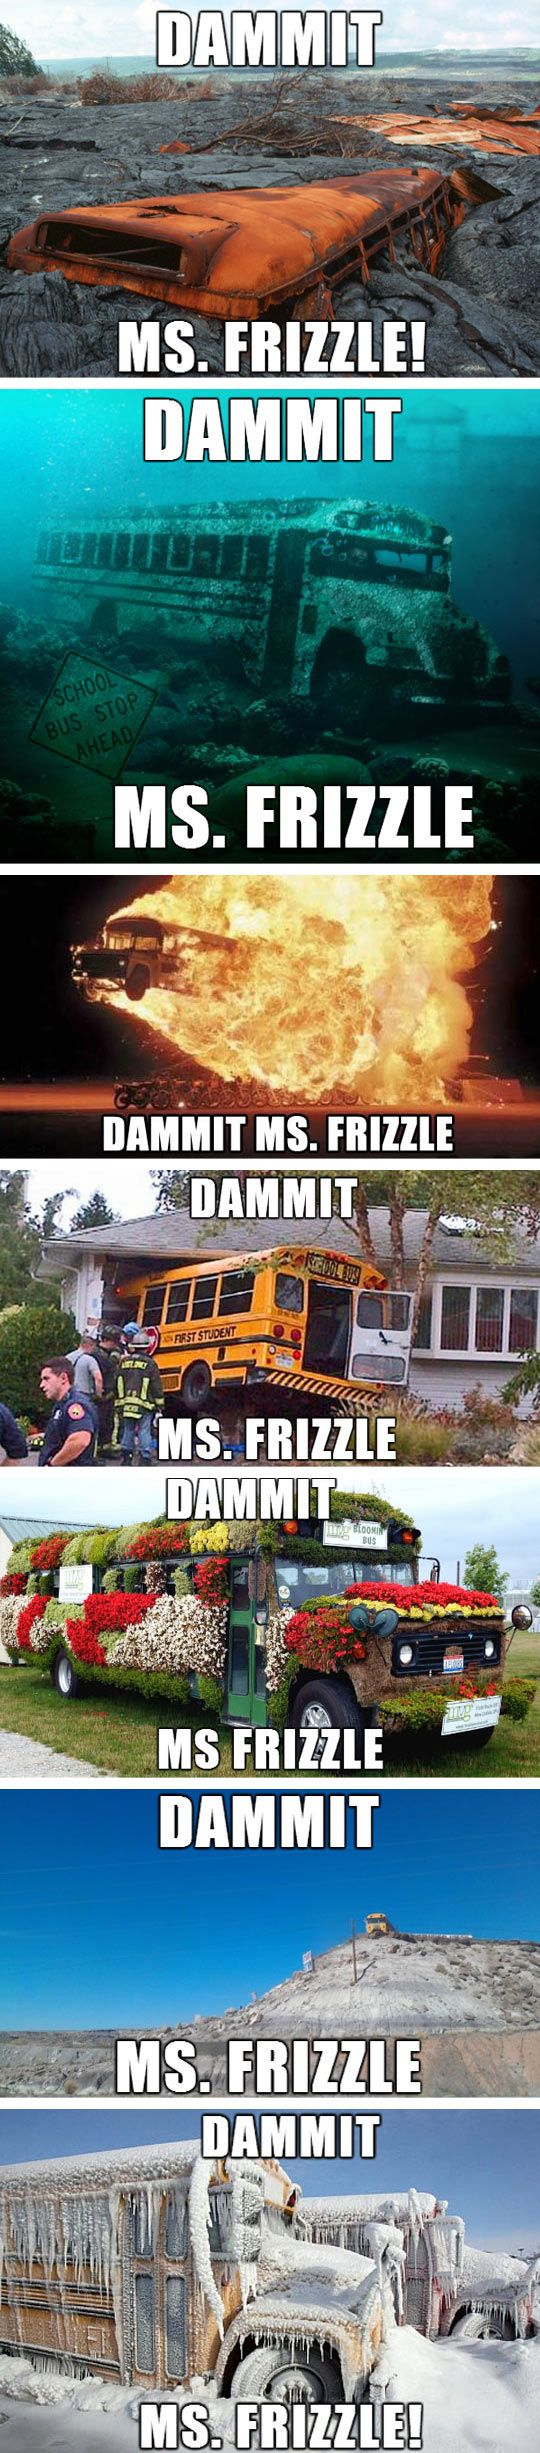 Damnit Ms. Frizzle